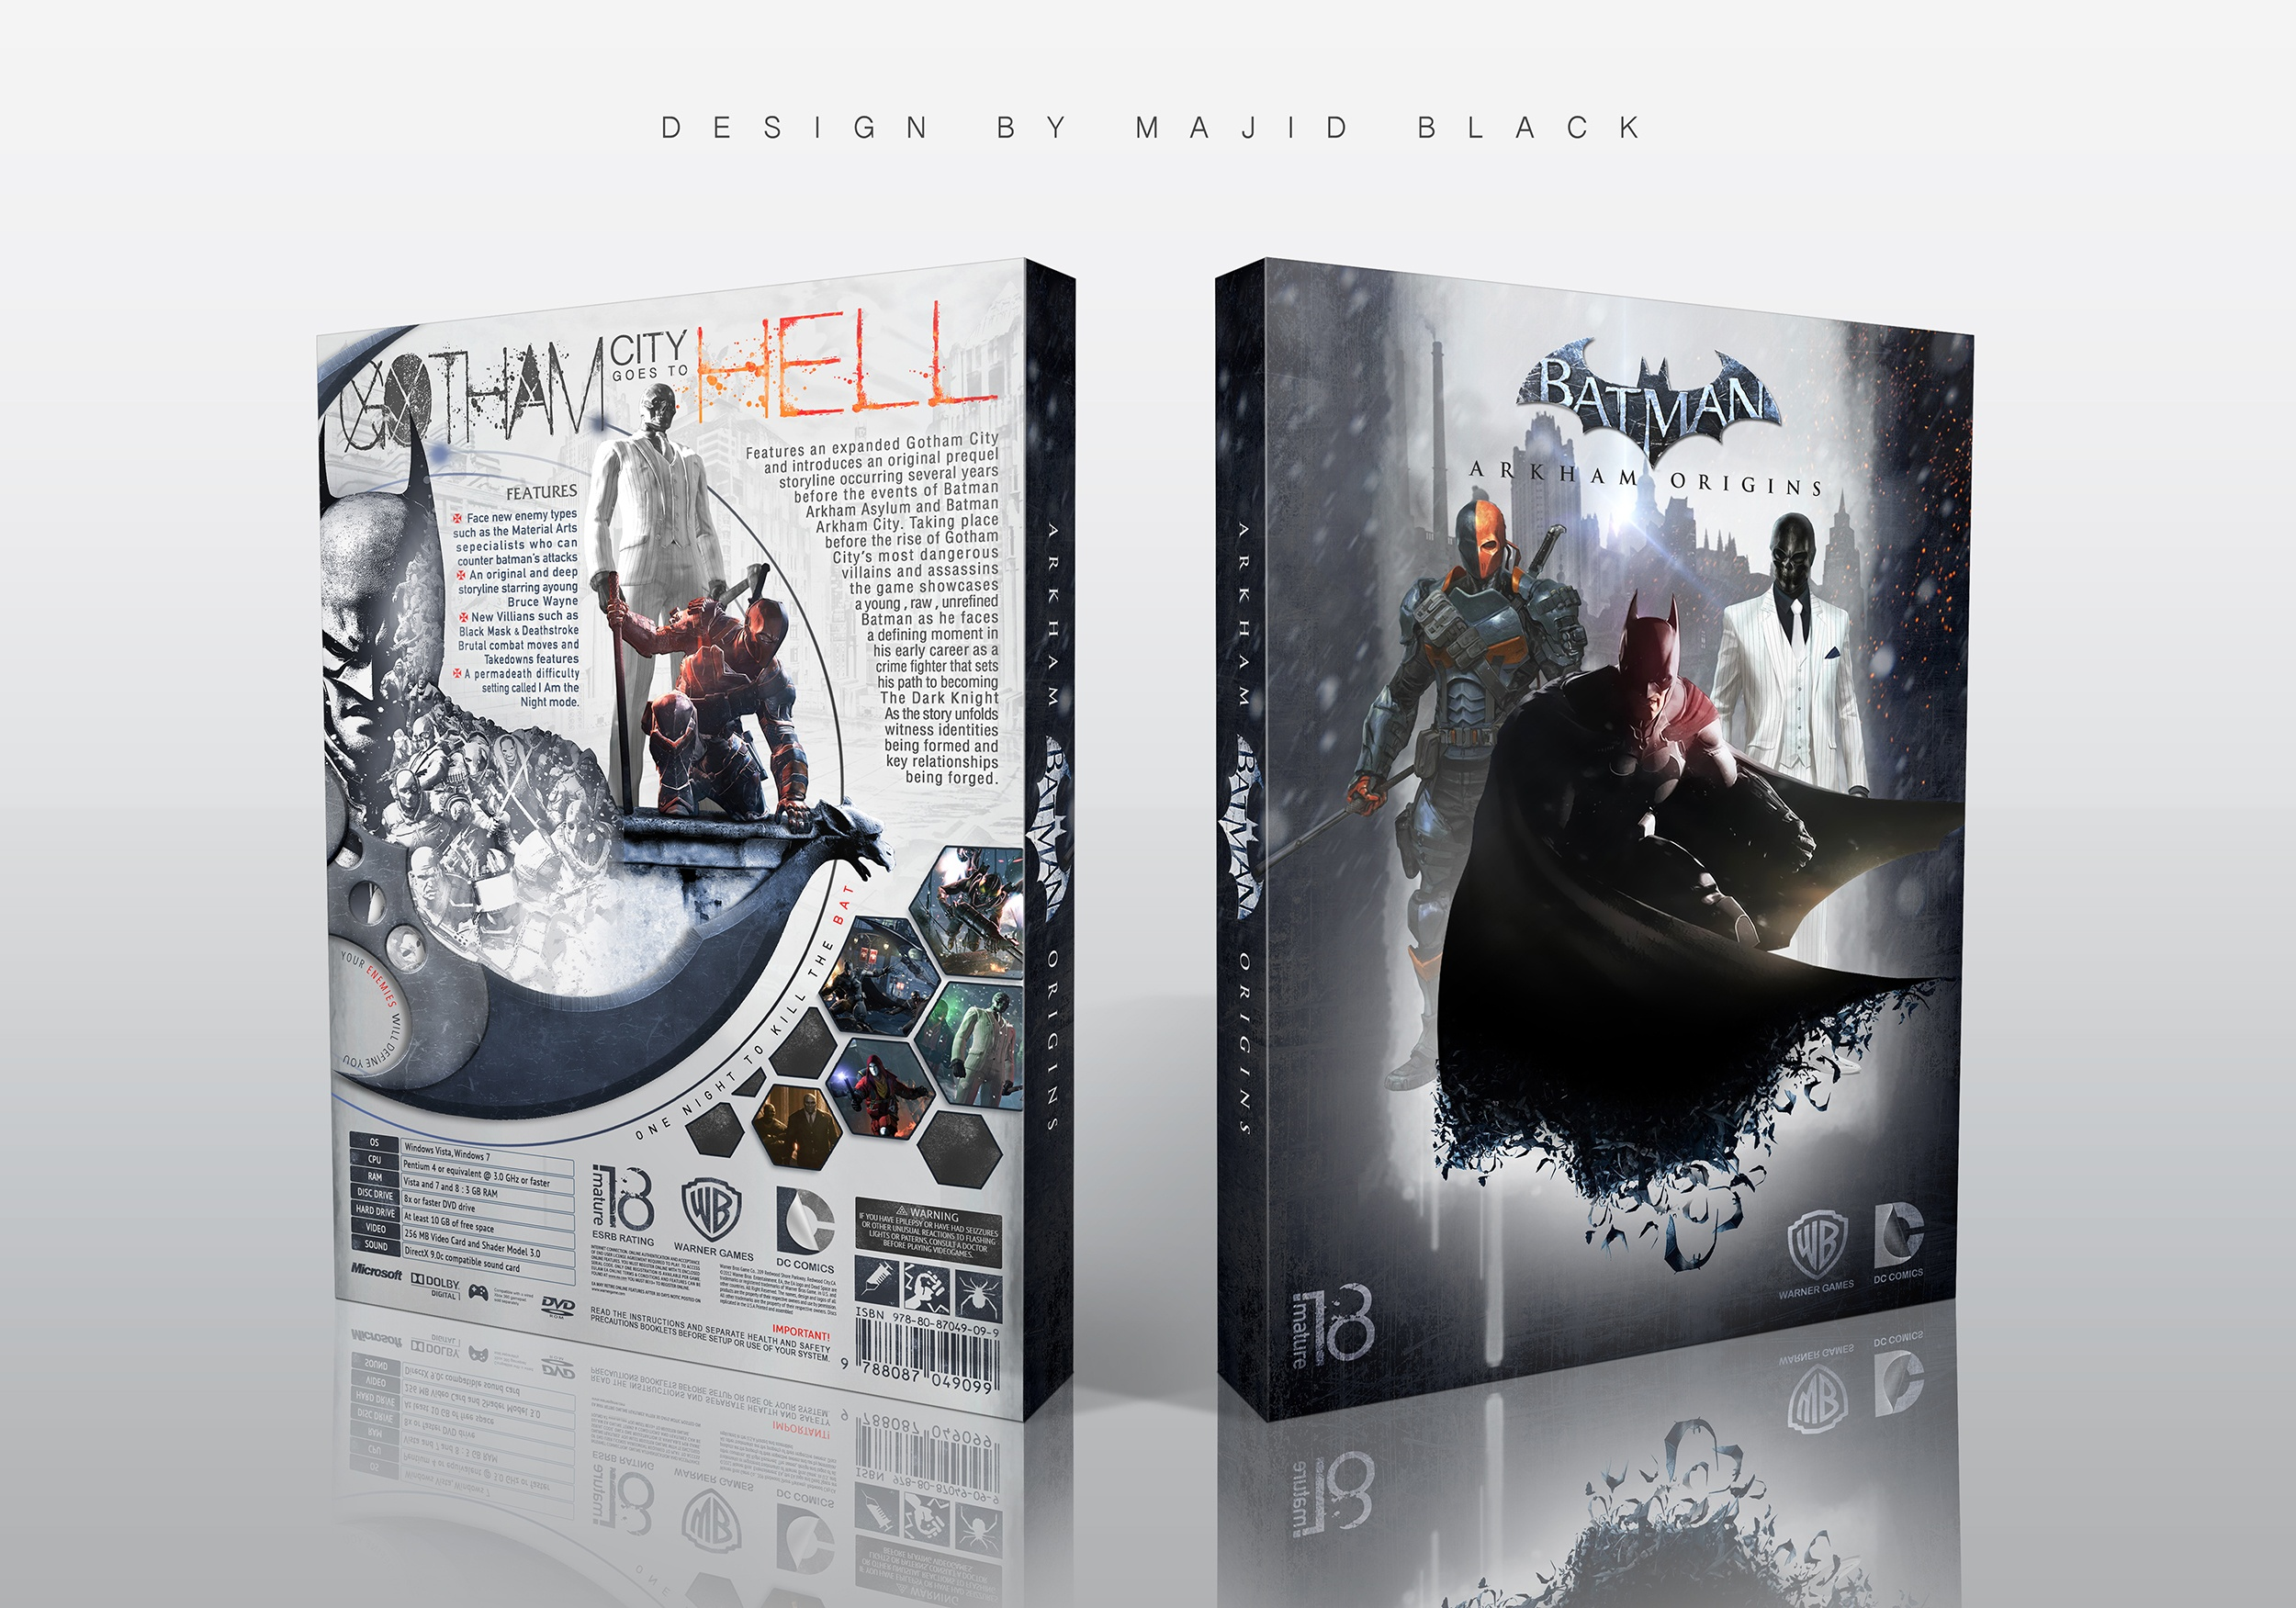 Batman Arkham Origins box cover